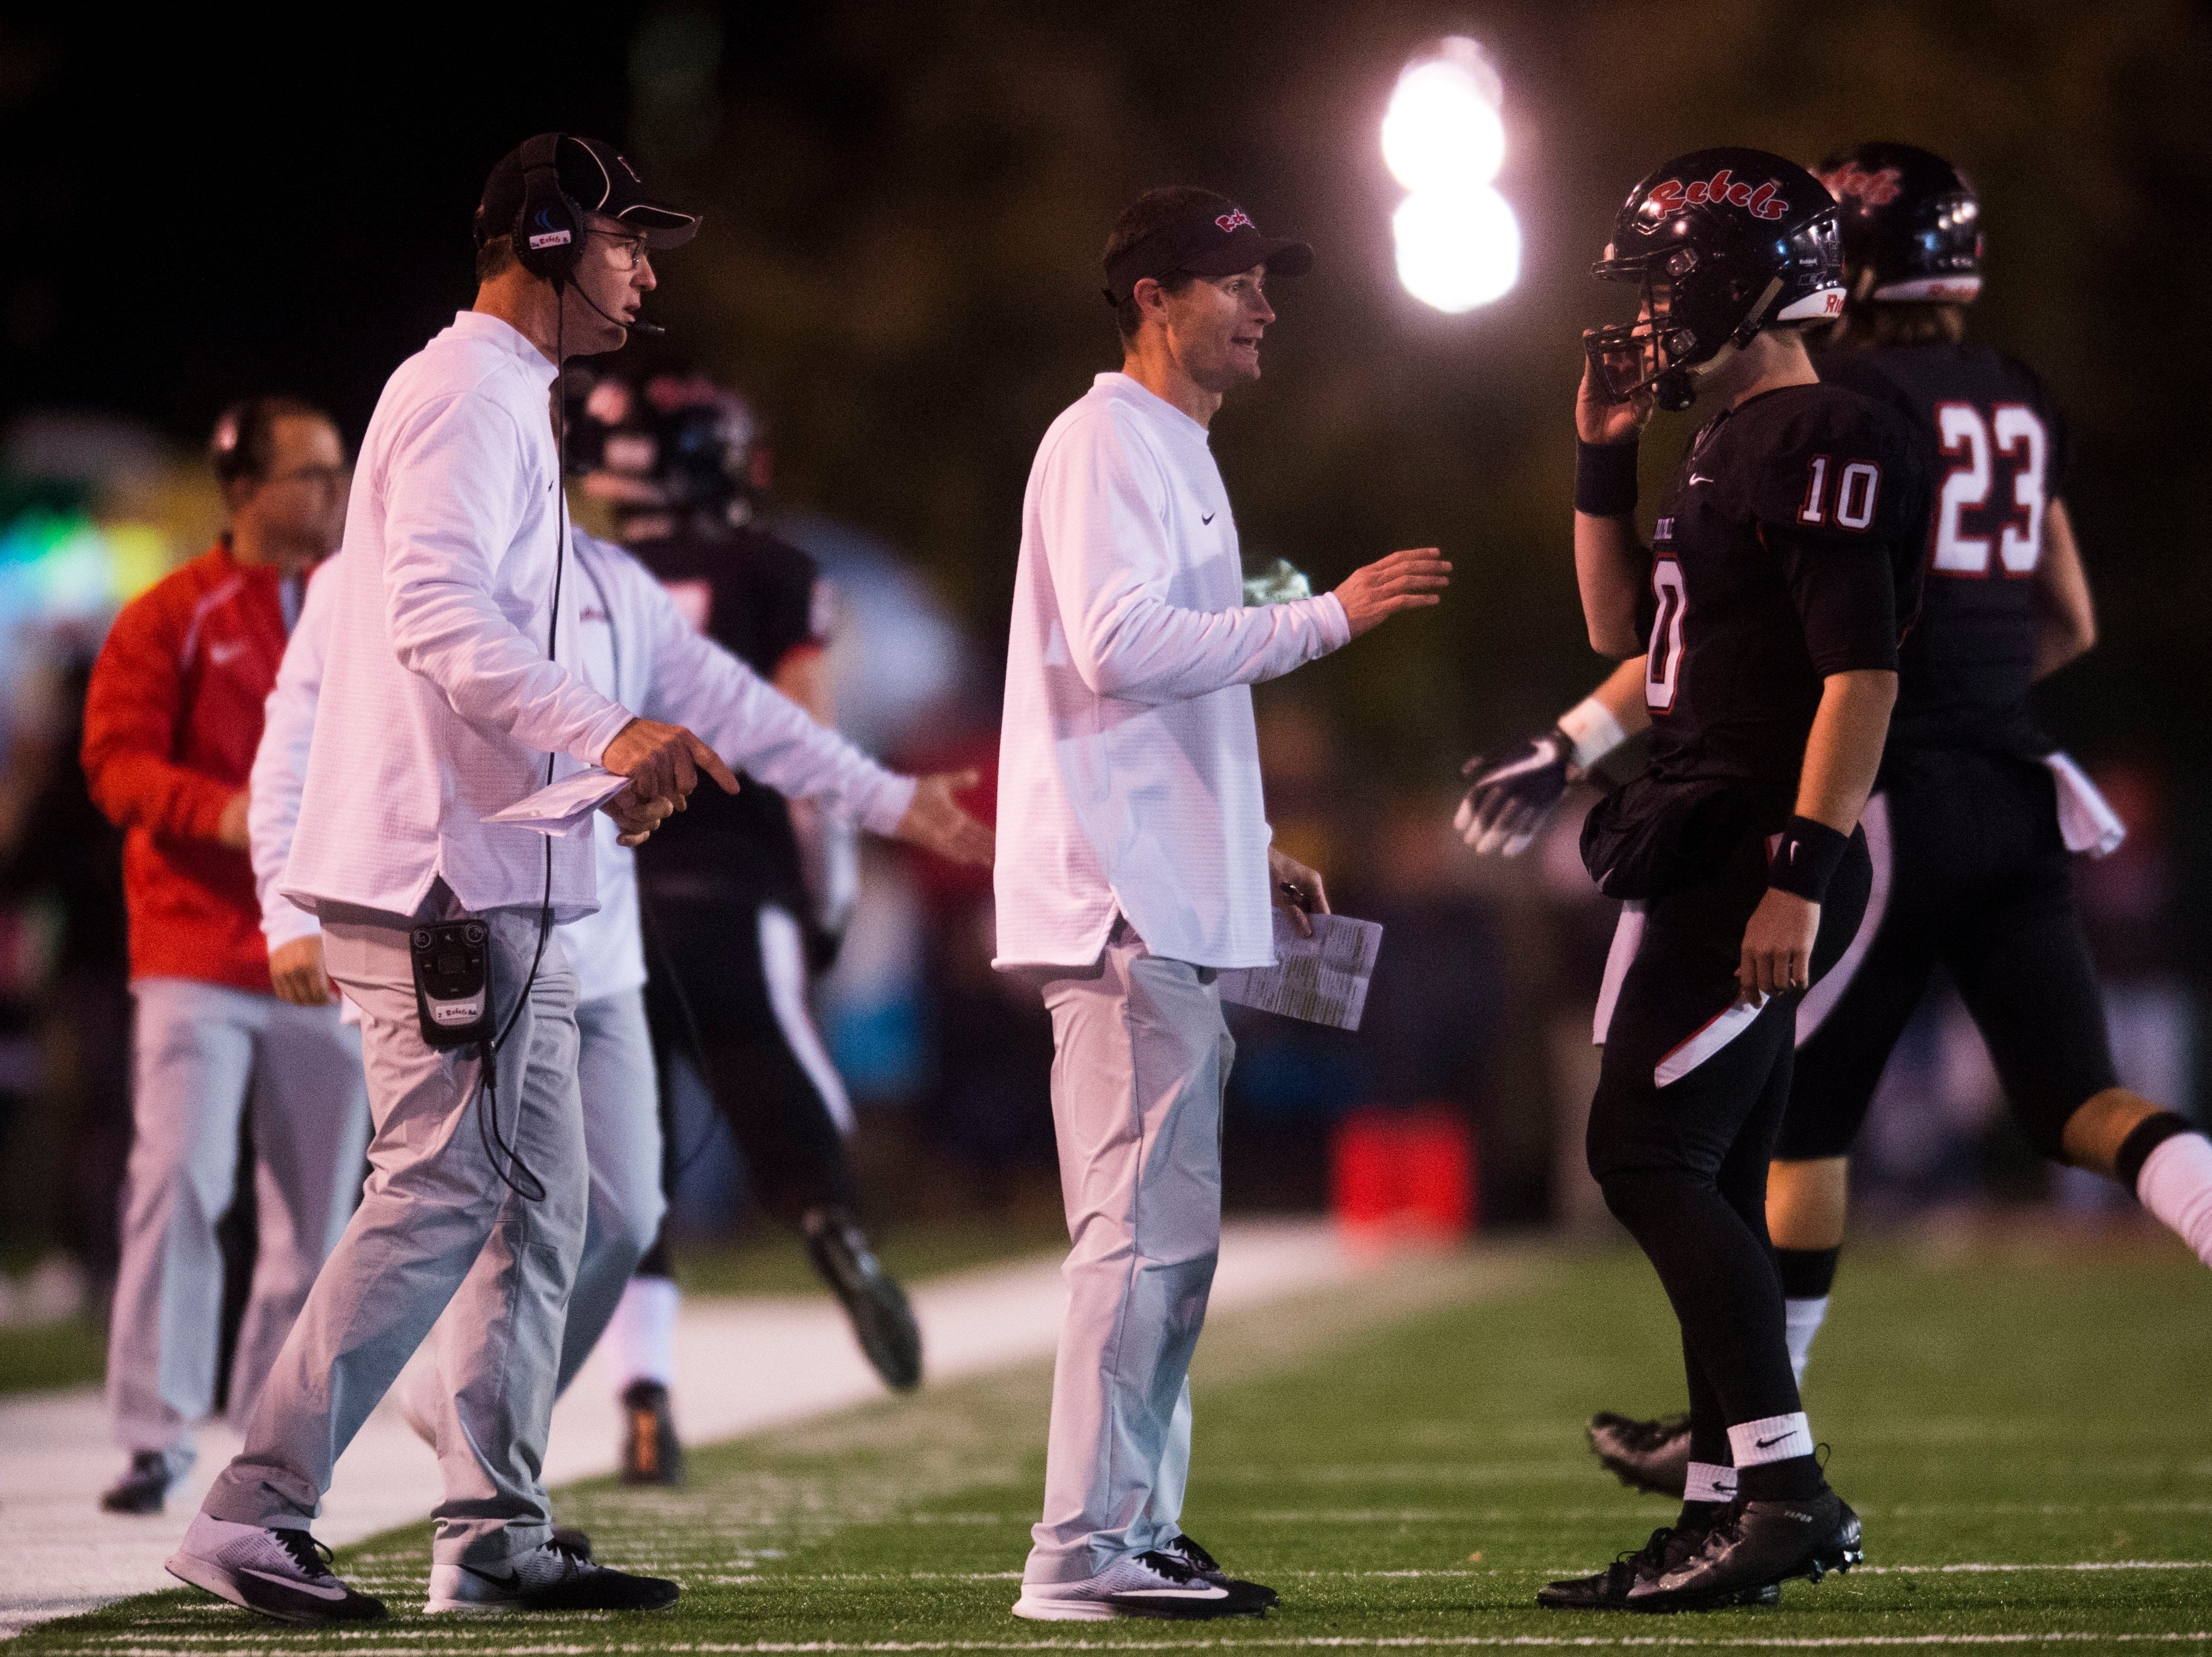 Maryville Head Coach Derek Hunt coaches during a 6A quarterfinal game between Maryville and Farragut at Maryville Friday, Nov. 16, 2018. Maryville defeated Farragut 26-10.